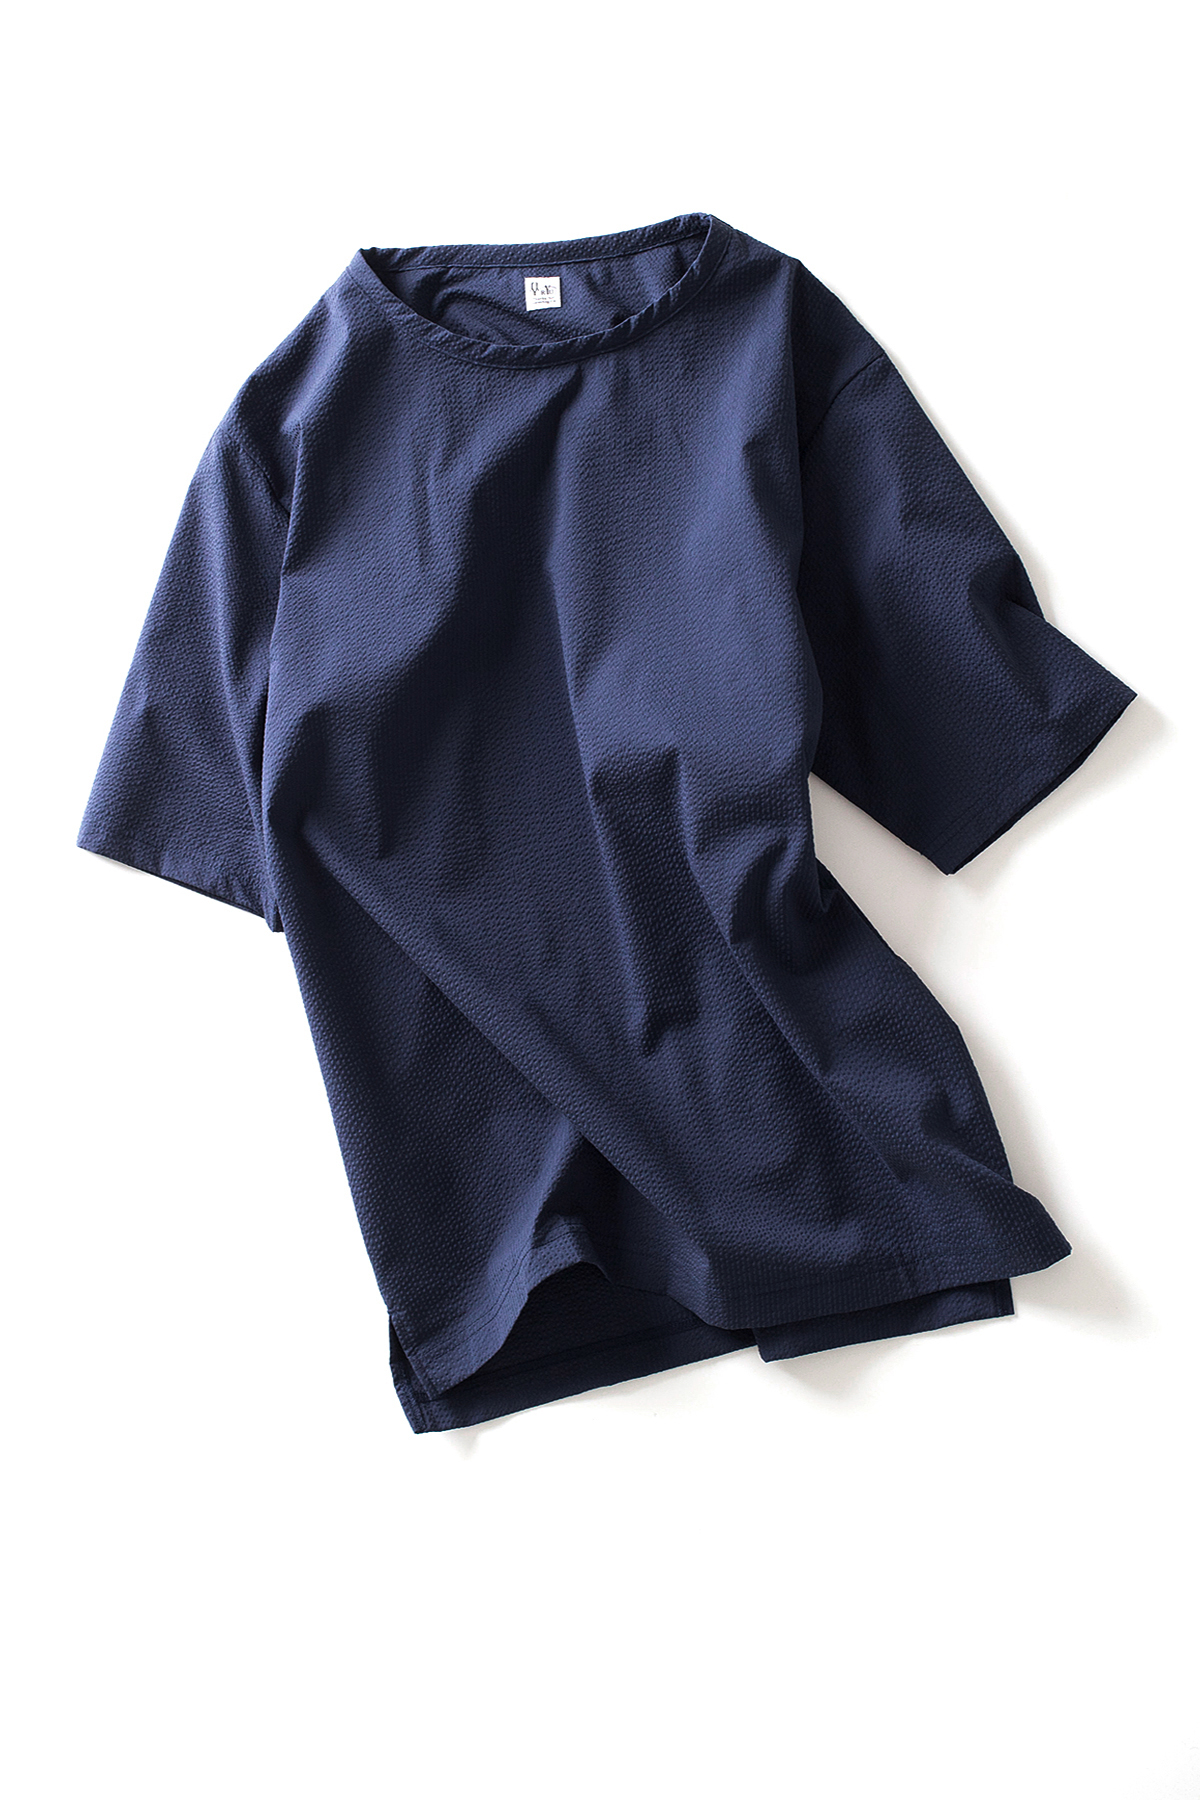 RYU : Seersucker Half Sleeve Shirt (Navy)